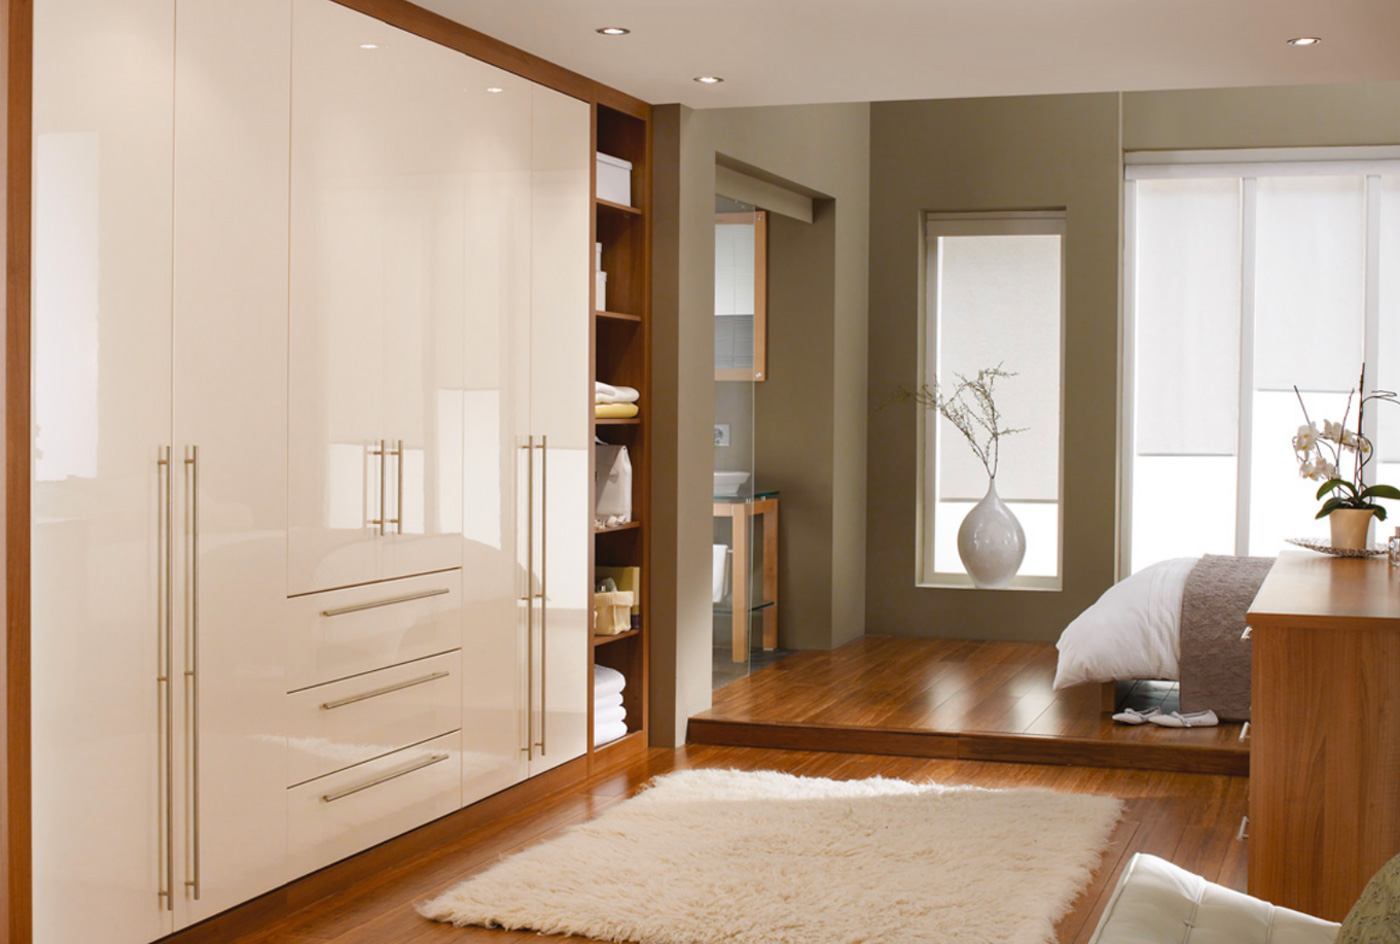 Built In Bedroom Cupboards Cape Town - Beyond Kitchens